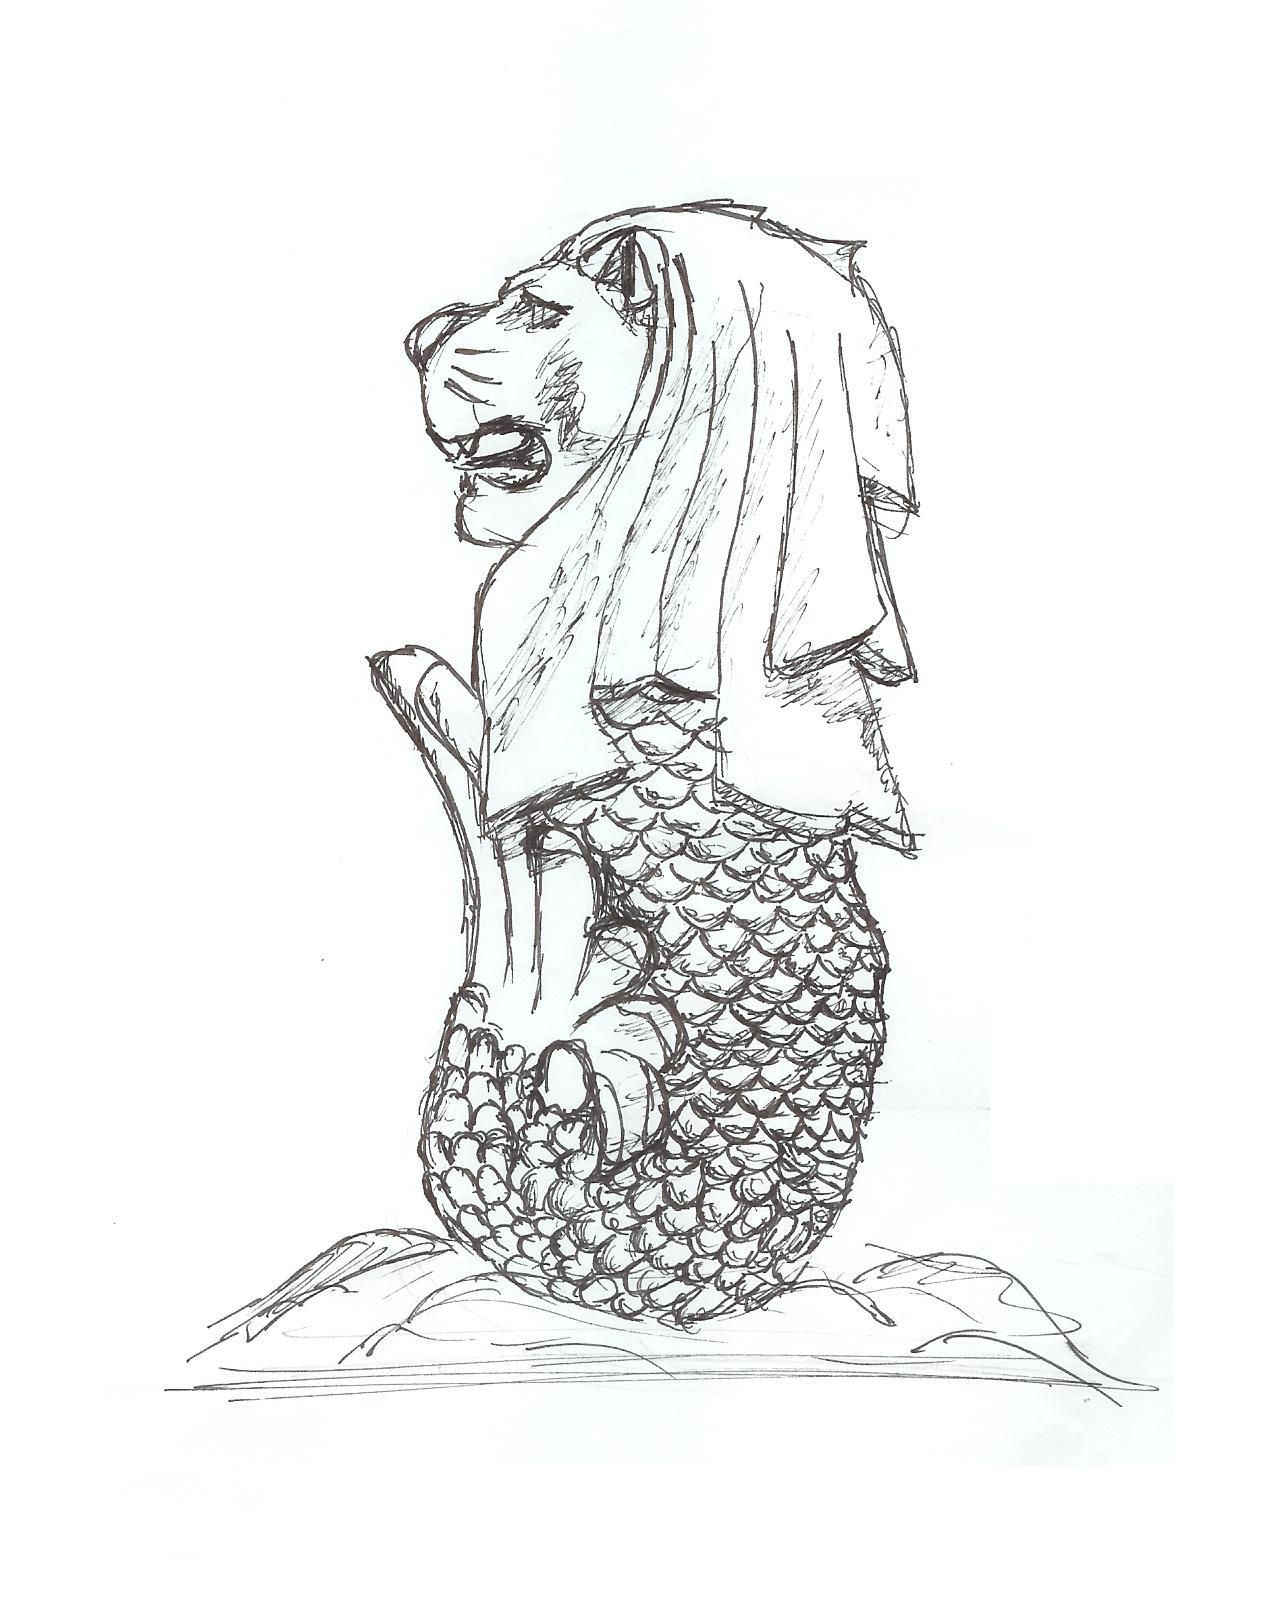 Merlion A Mermaid And A Lion